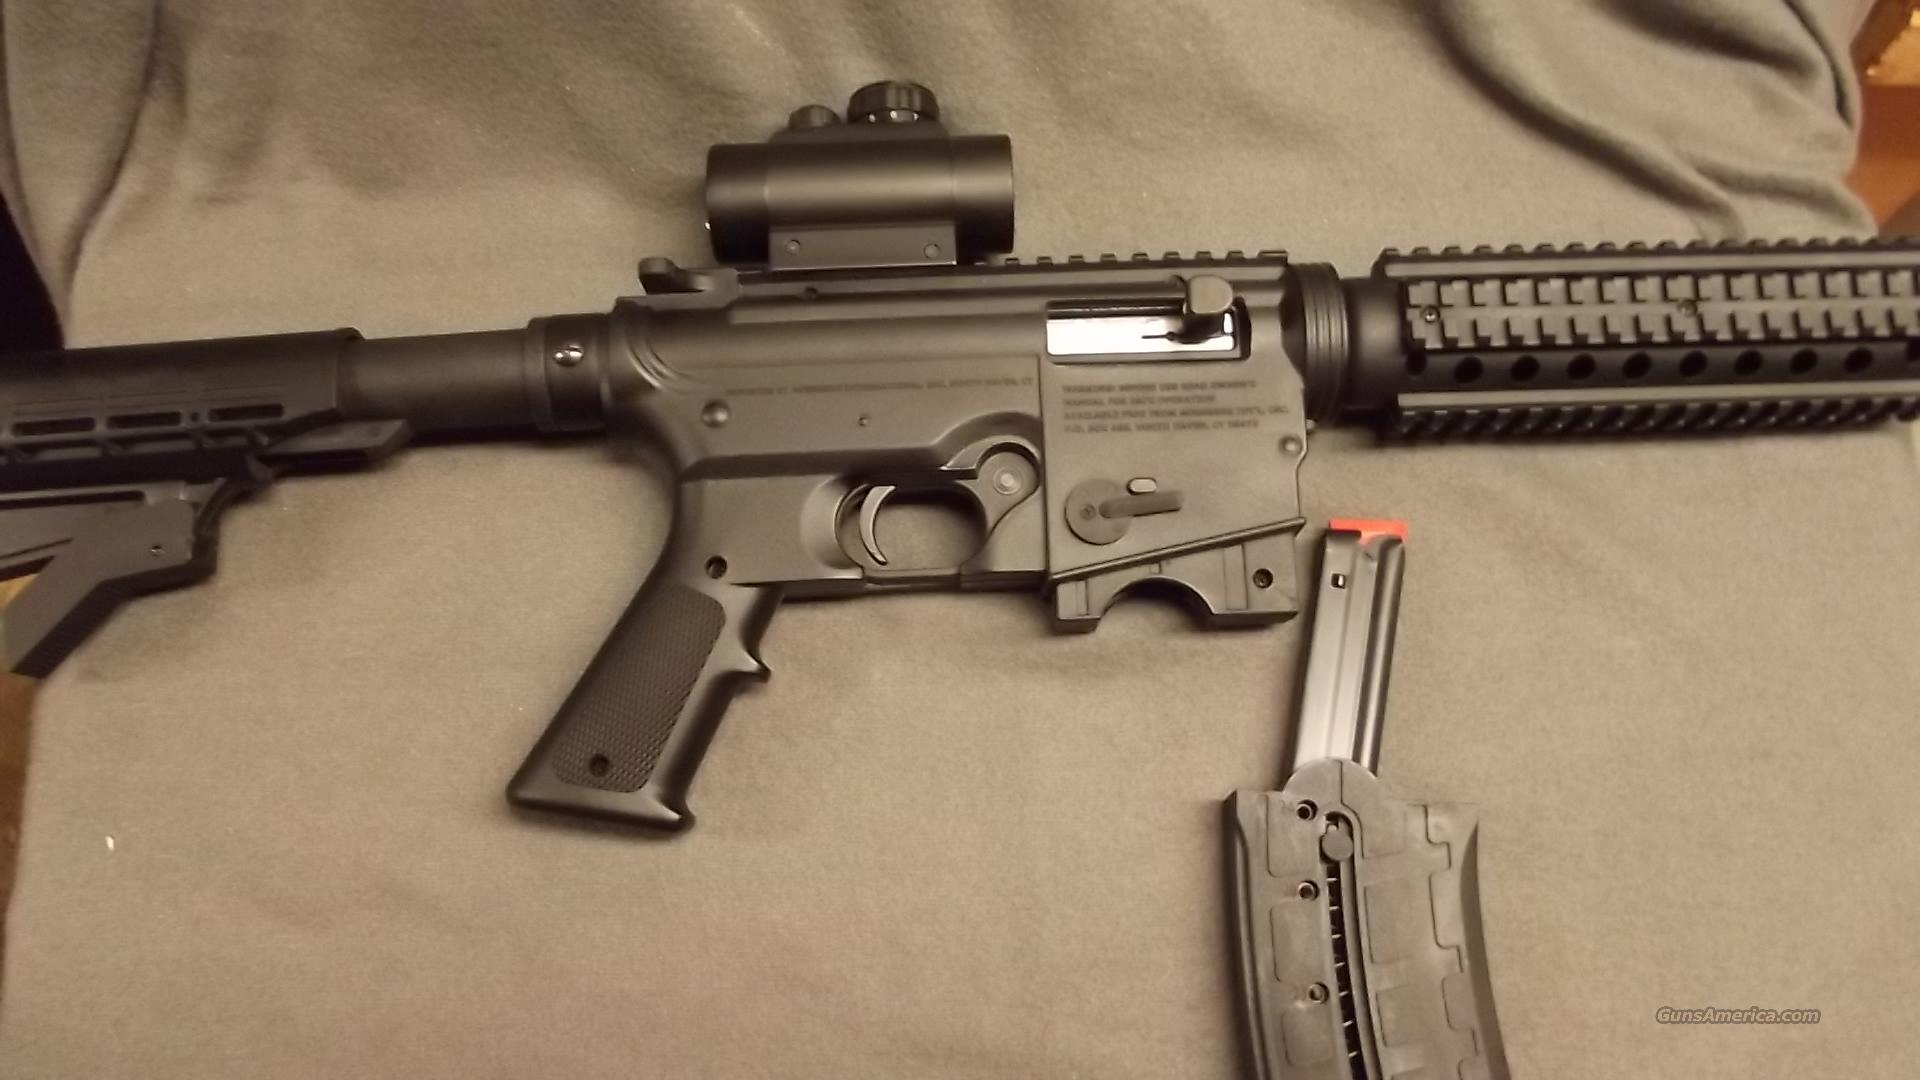 MOSSBERG 715T AR TYPE RIFLE IN 22